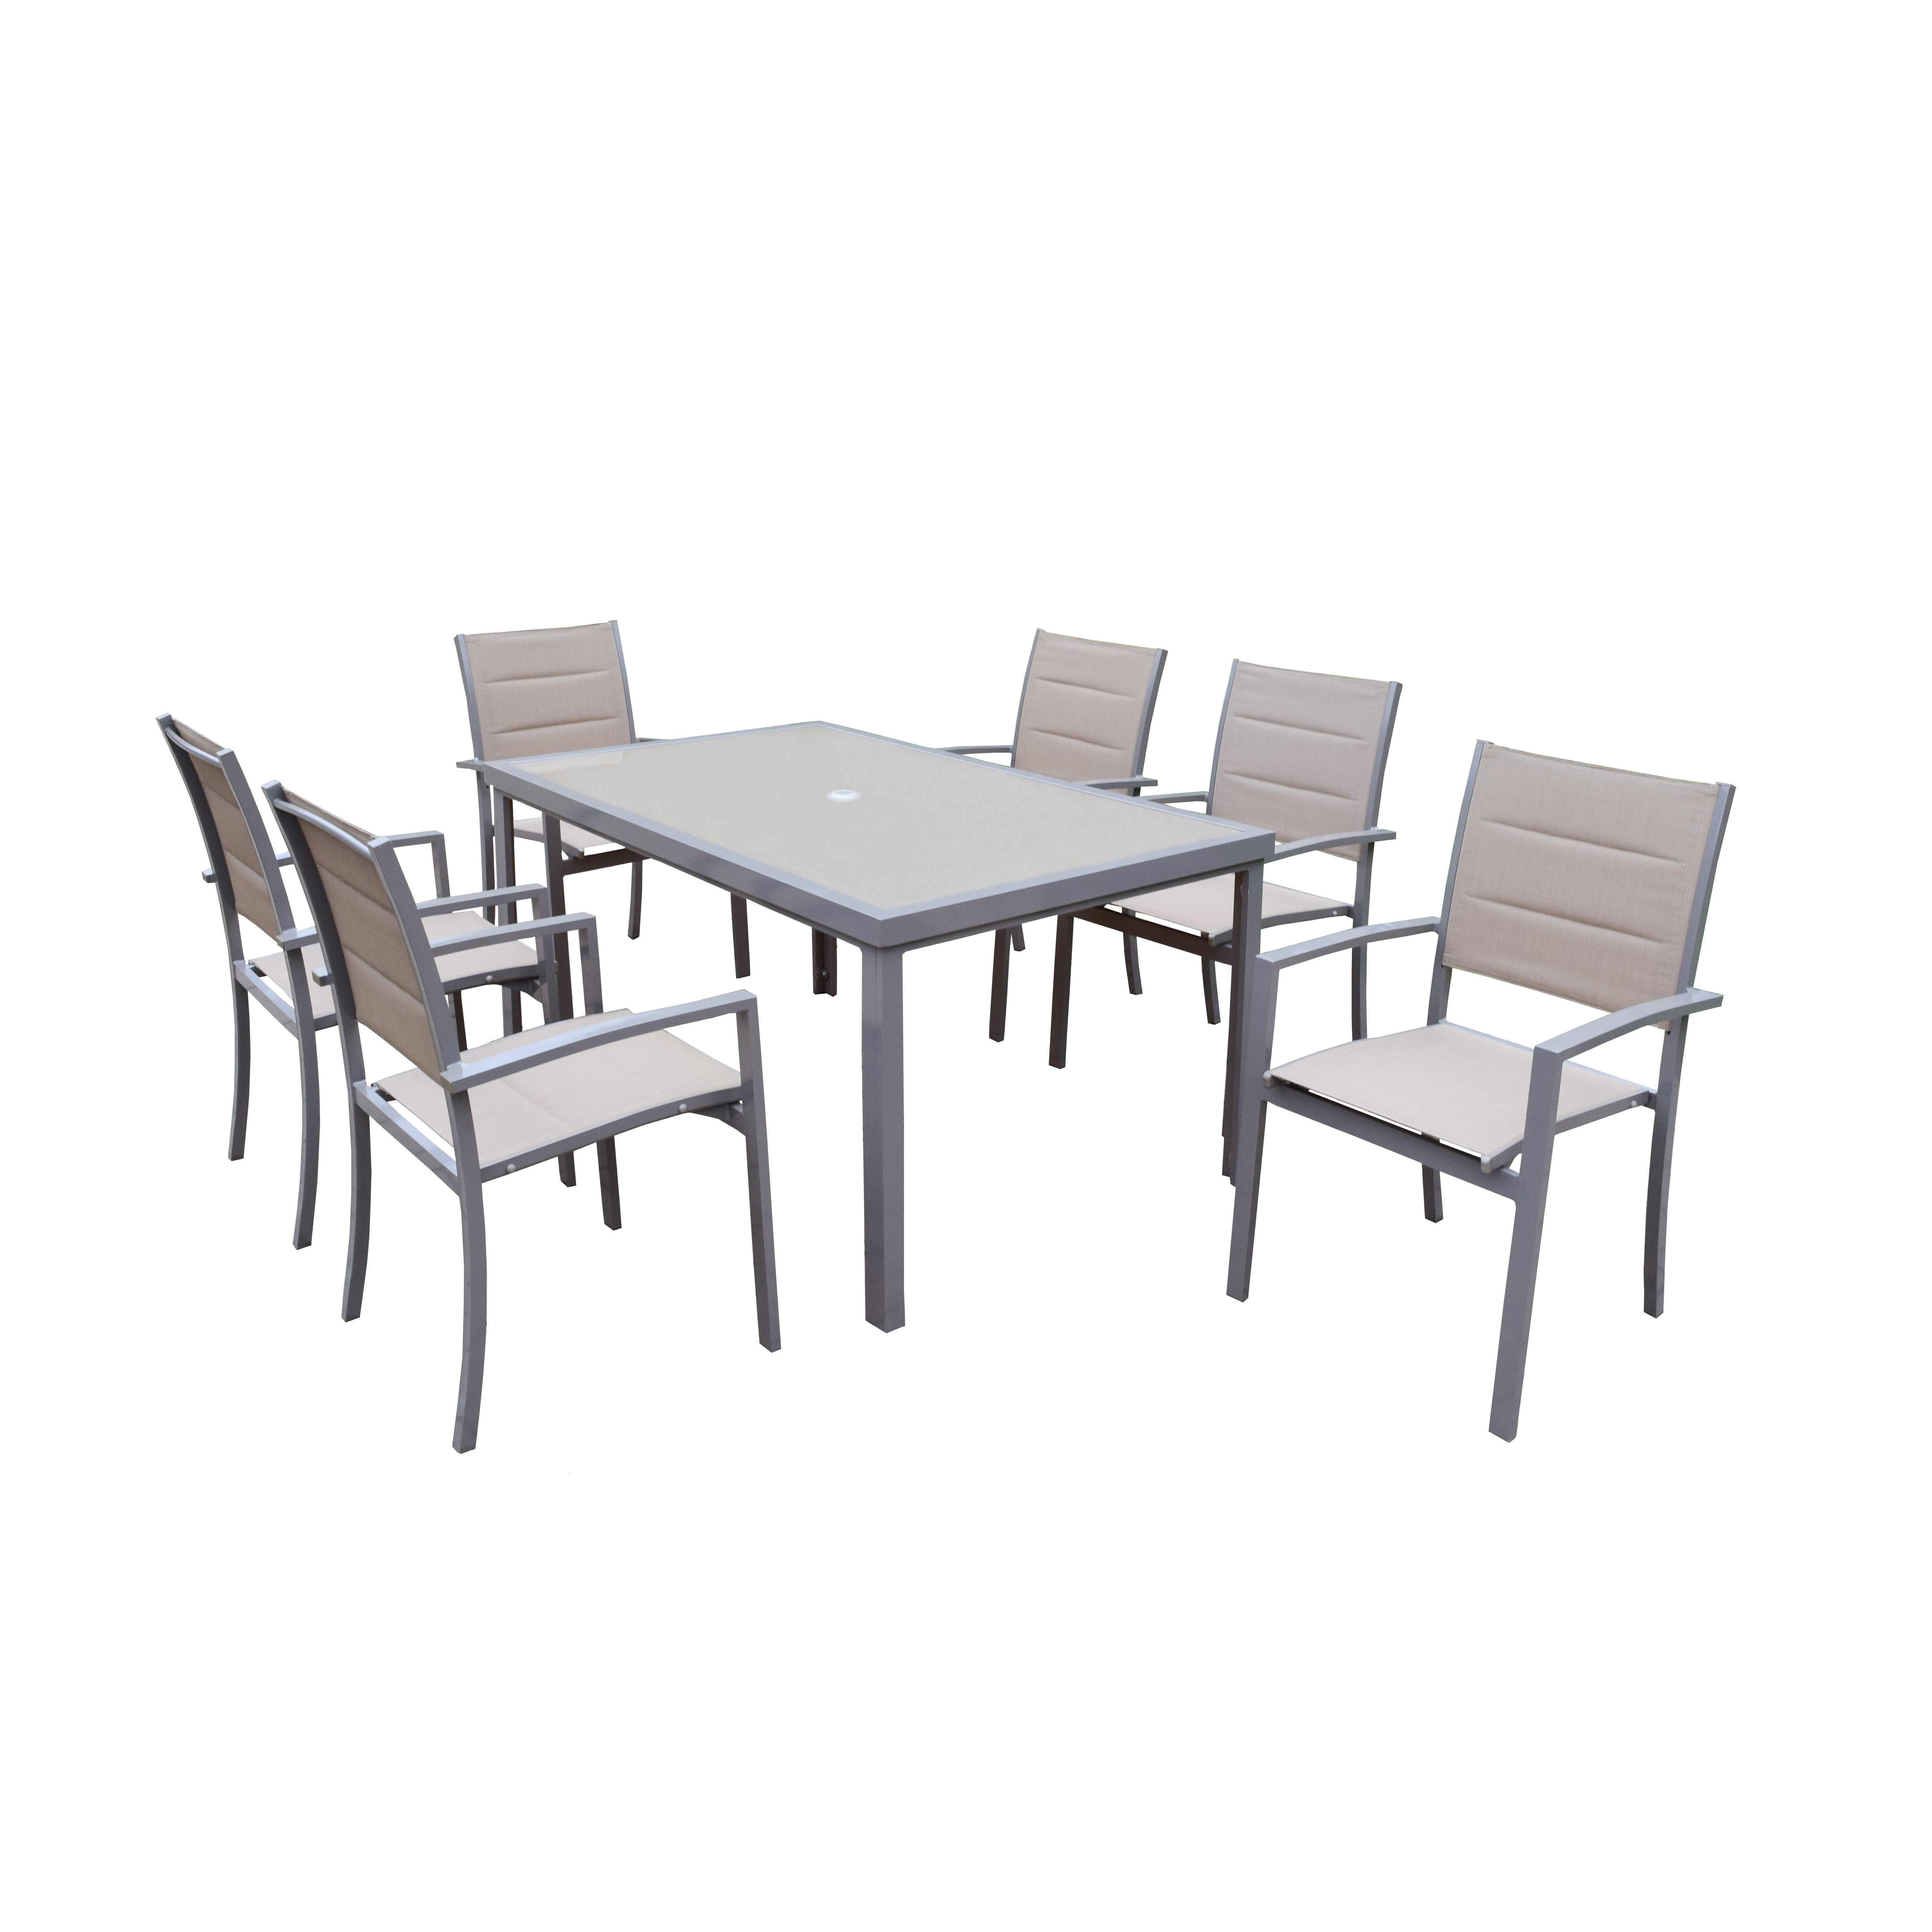 Oakland living padded sling 7 piece dining set reviews for 7 piece dining set